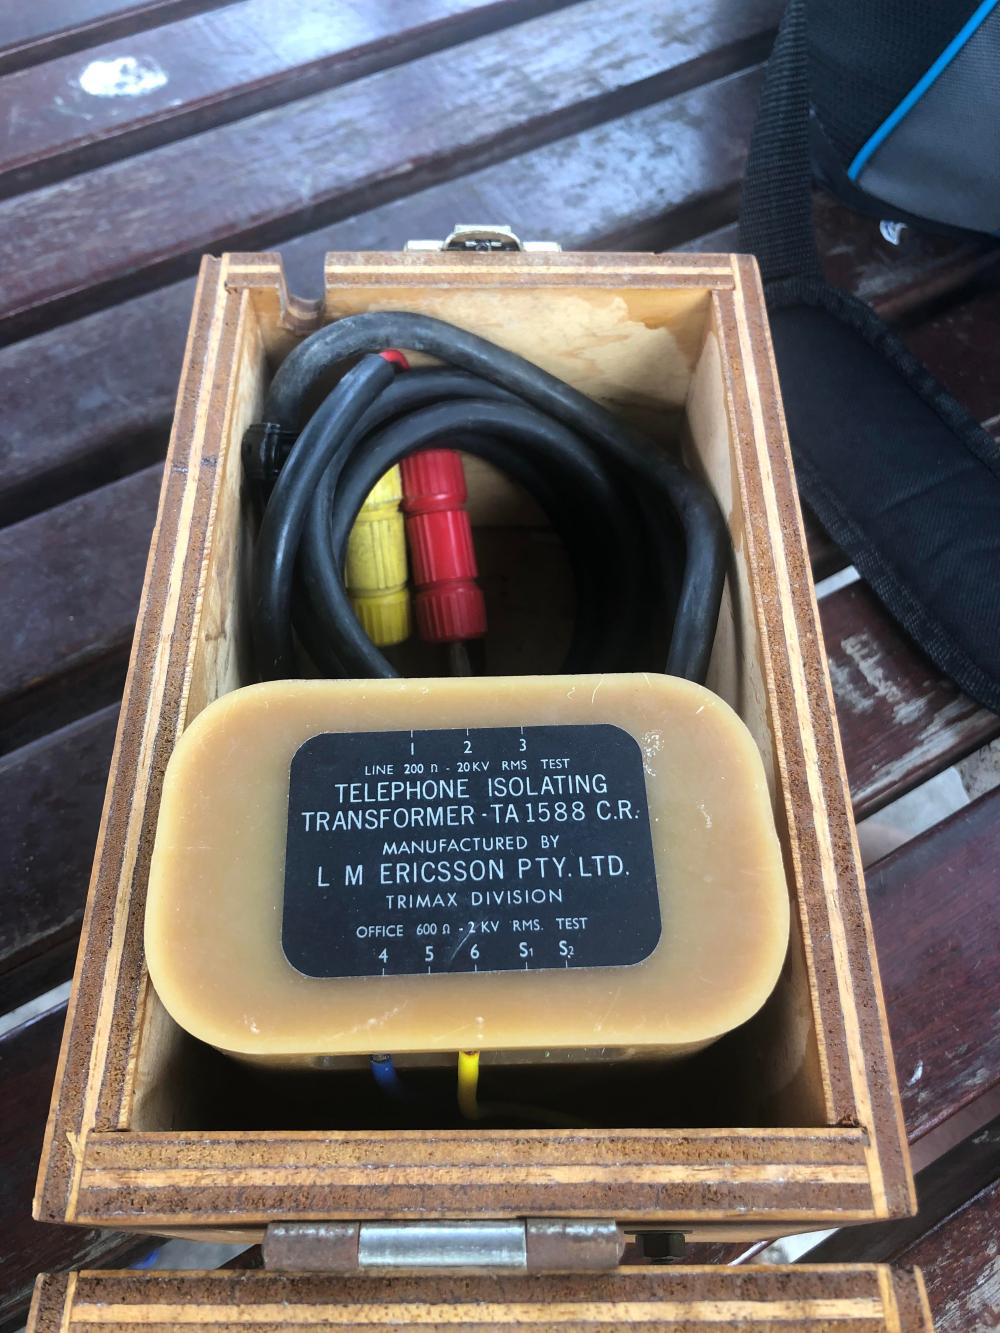 medium resolution of i found this today i believe it is a testing kit of some sort for old phone lines but can anyone shed more information on it